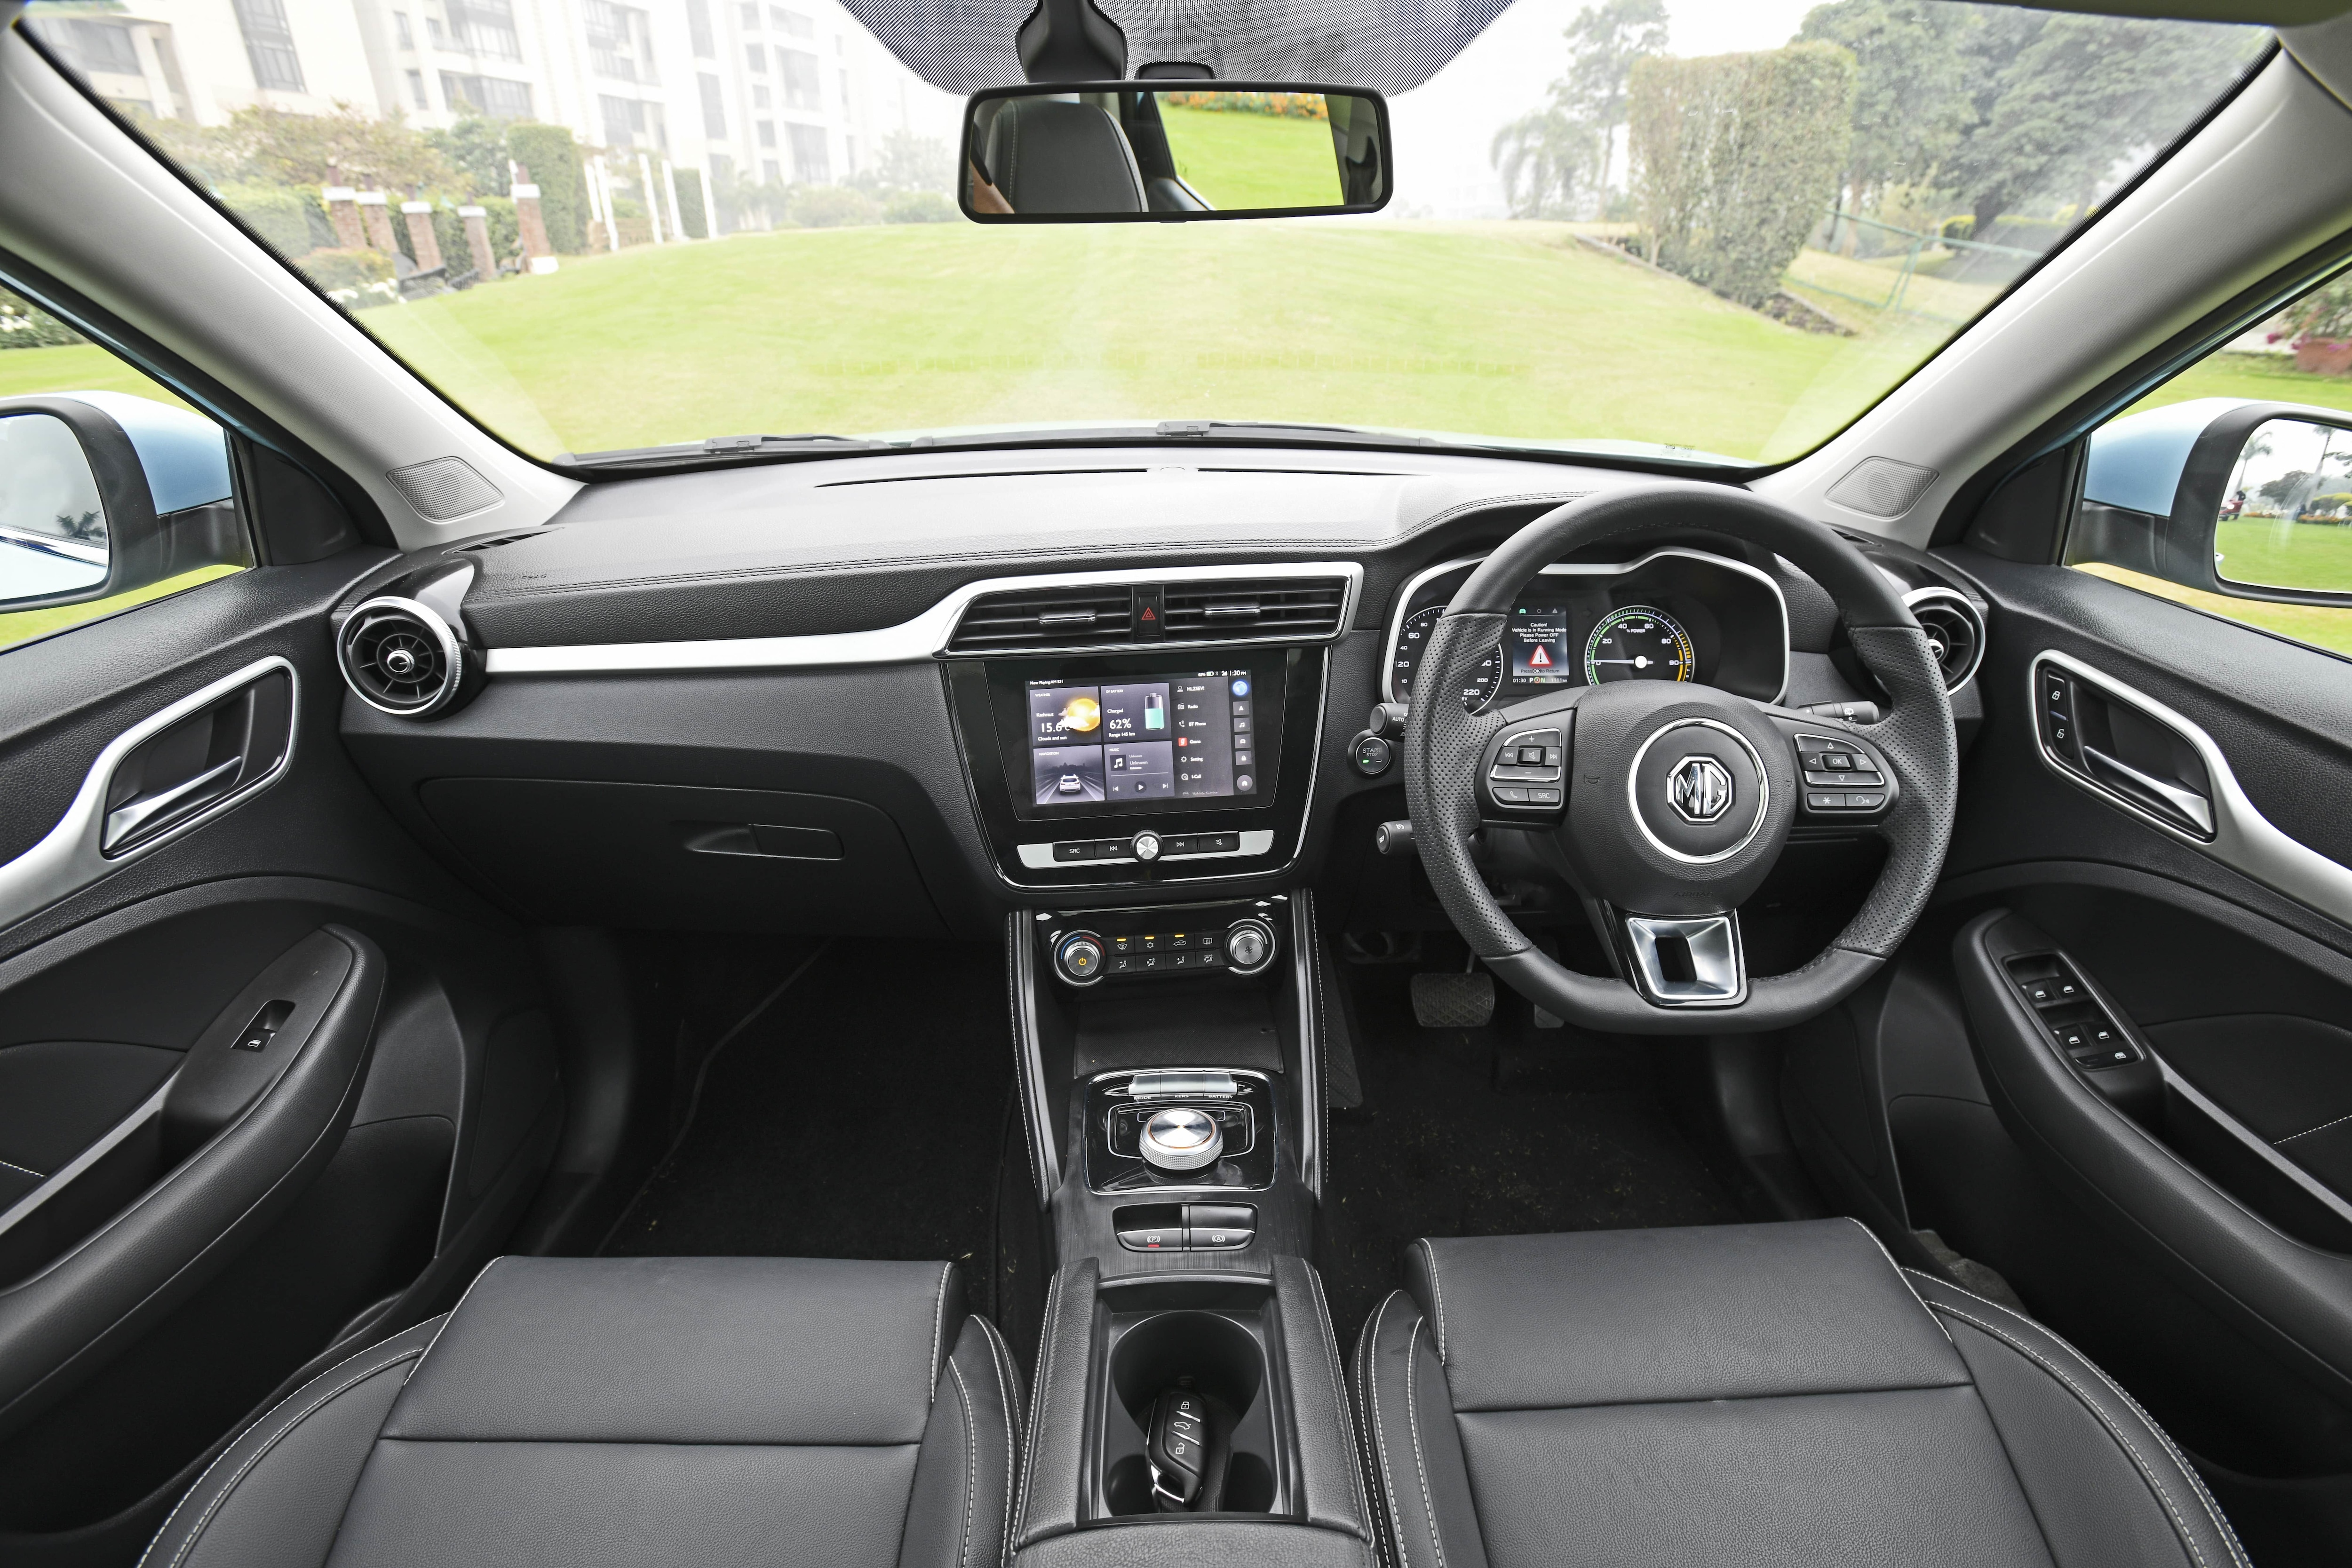 The interiors of the MG ZS is quite premium with chrome insets used smartly, soft-touch plastics on the upper dash, leather-wrapped steering wheel and a 20.32 cm touchscreen.